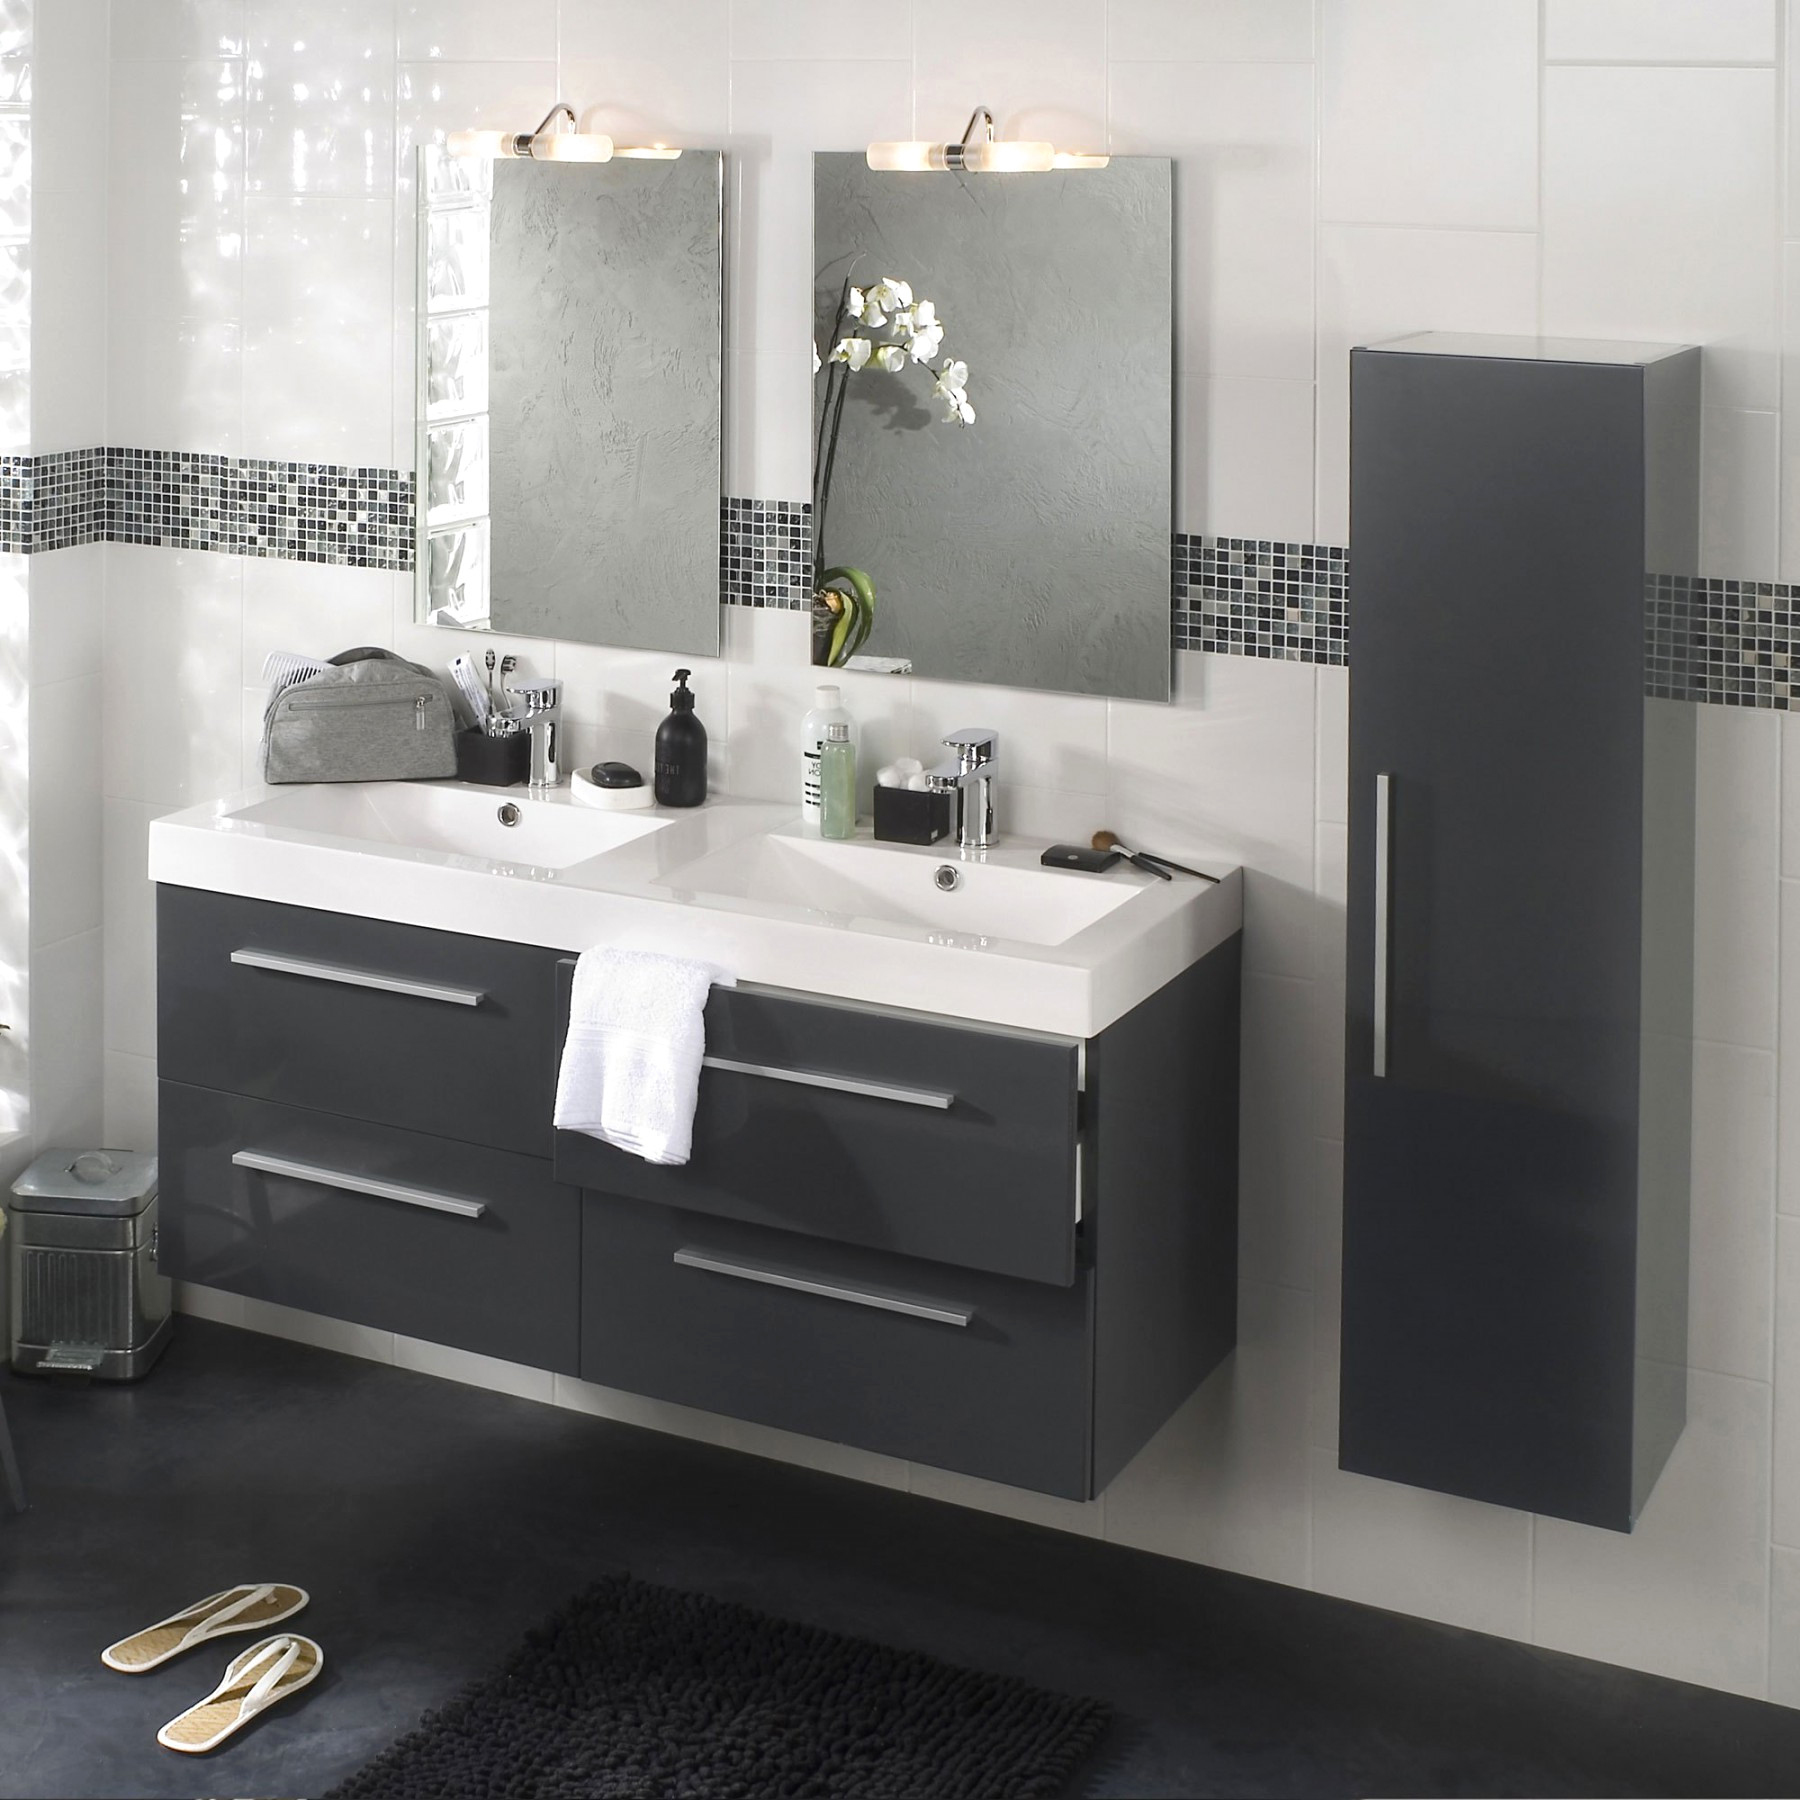 Meuble Salle De Bain Double Vasque Leroy Merlin Inspirant Image Meuble Double Vasque Dimension Affordable Finest Meuble Lavabo